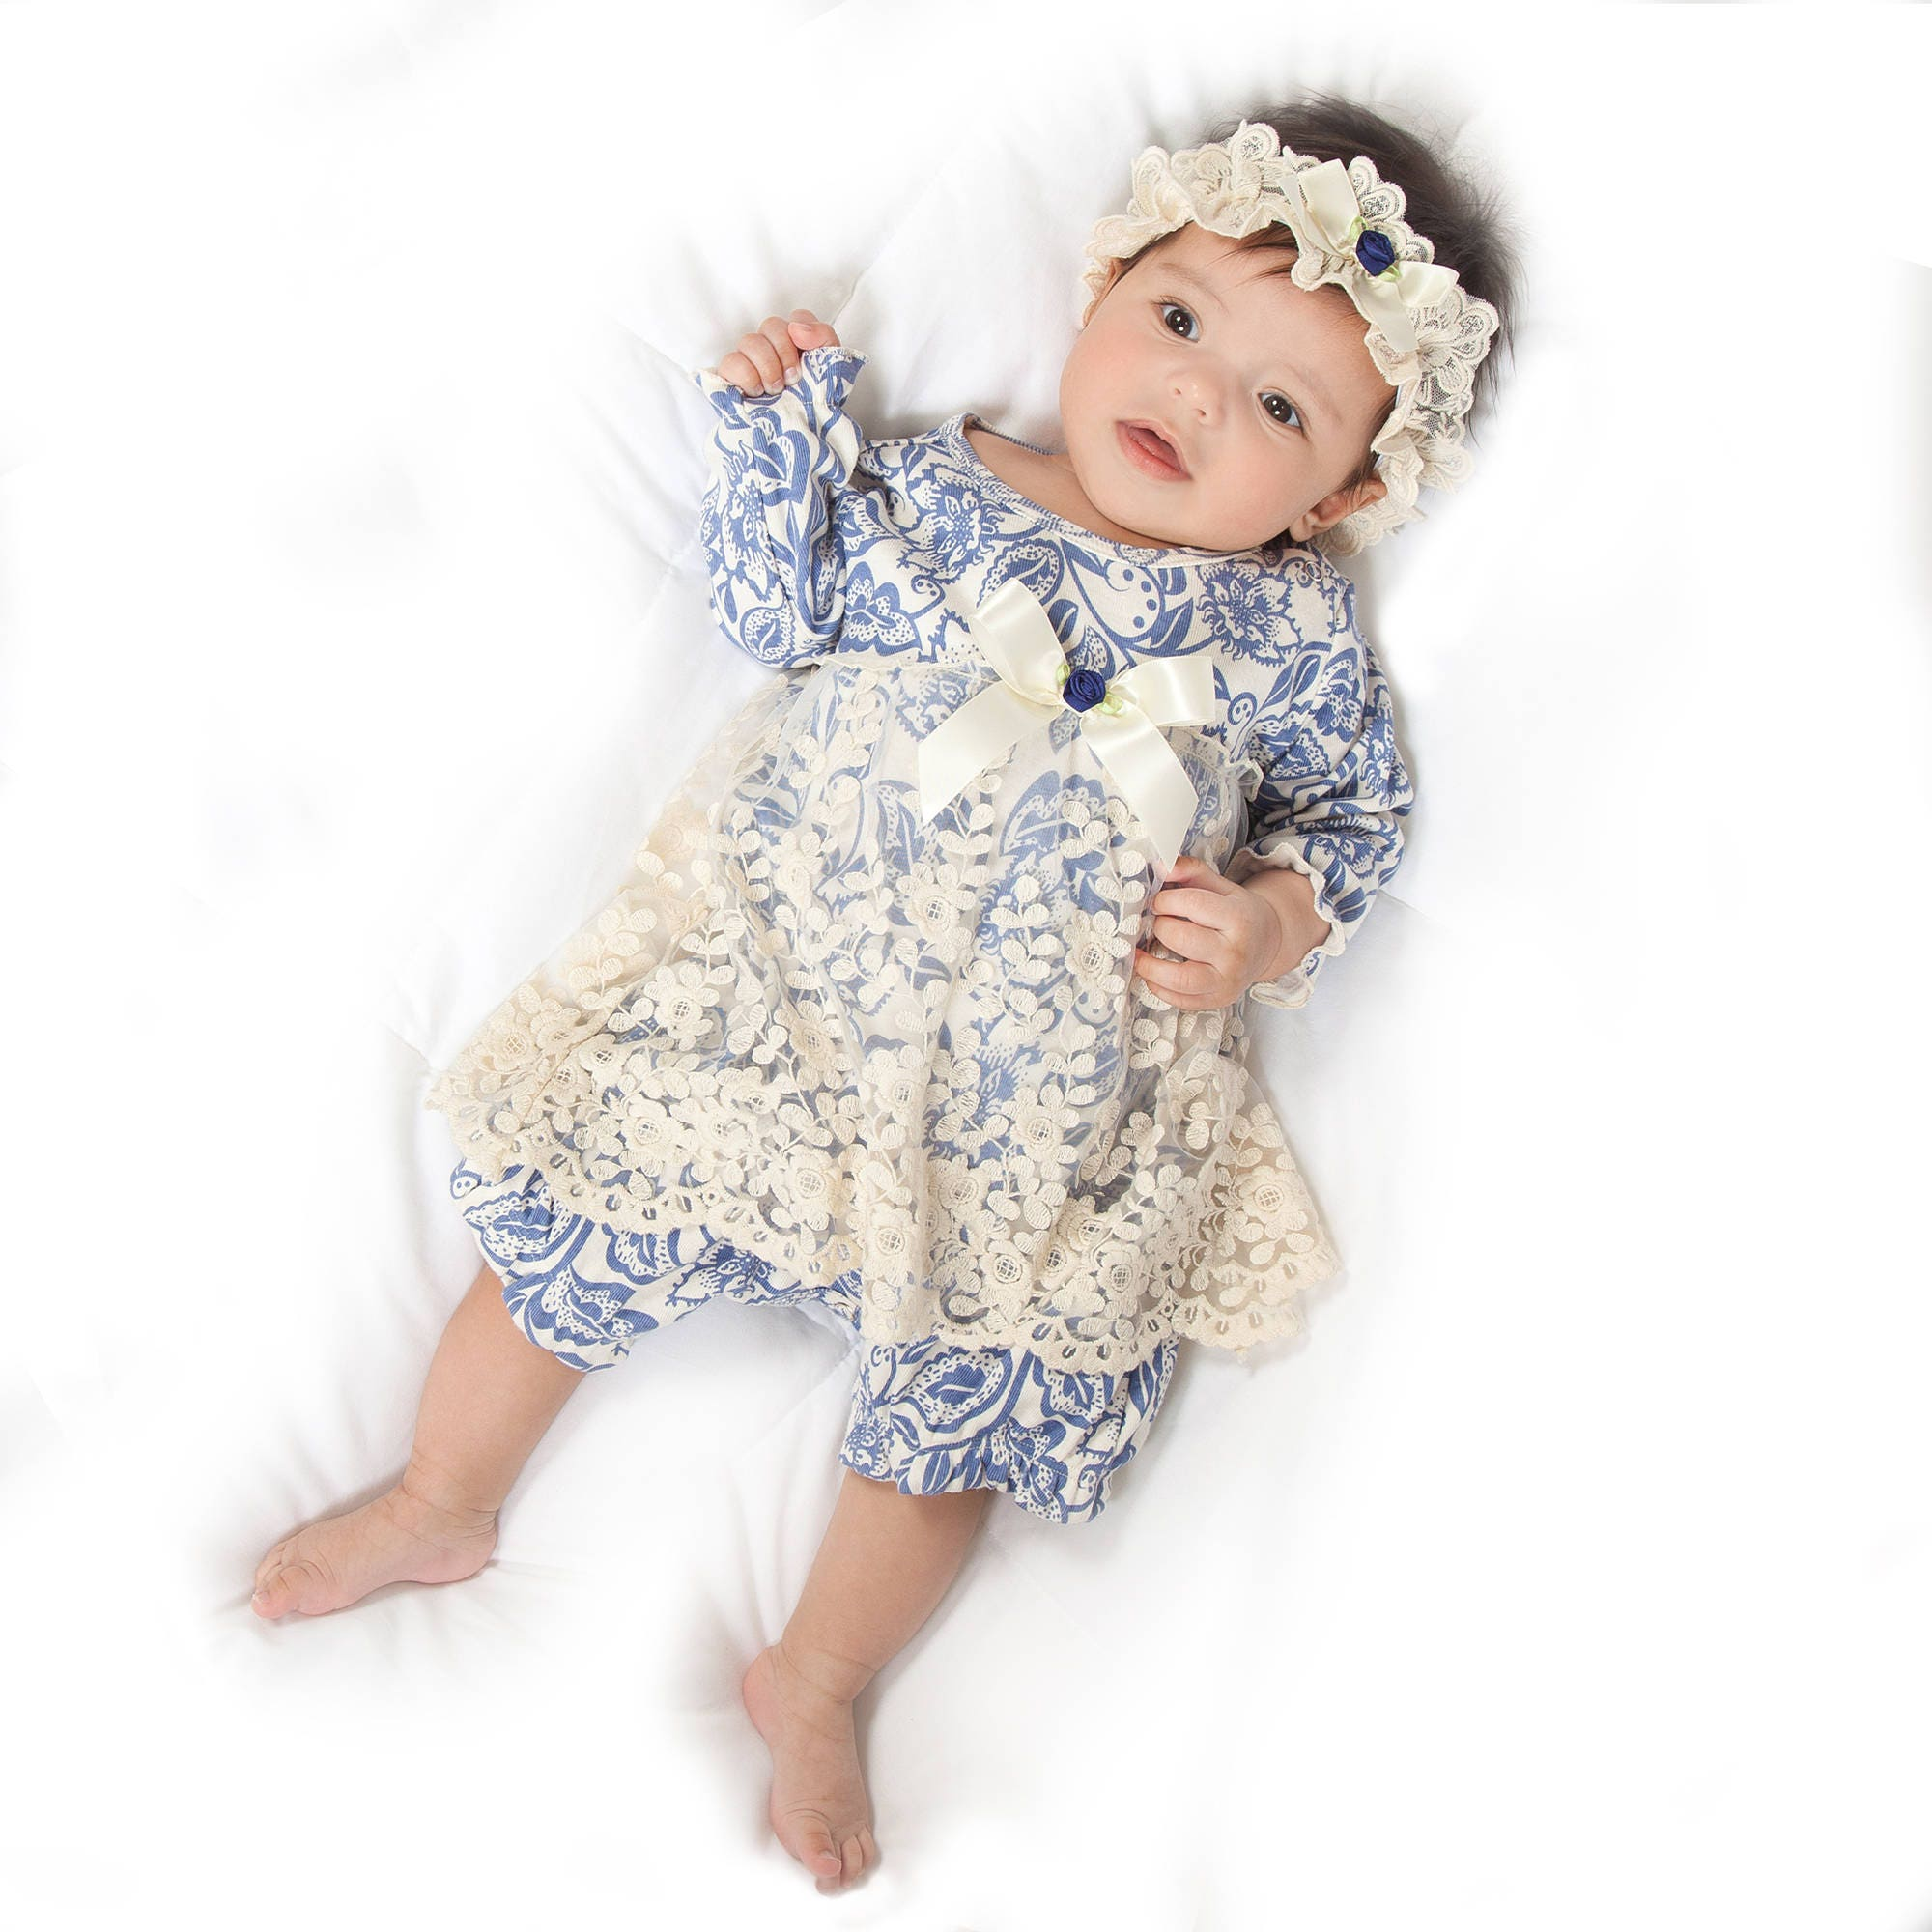 WINTER SALE Baby Girl Lace Skirted Romper Newborn Girl Outfit